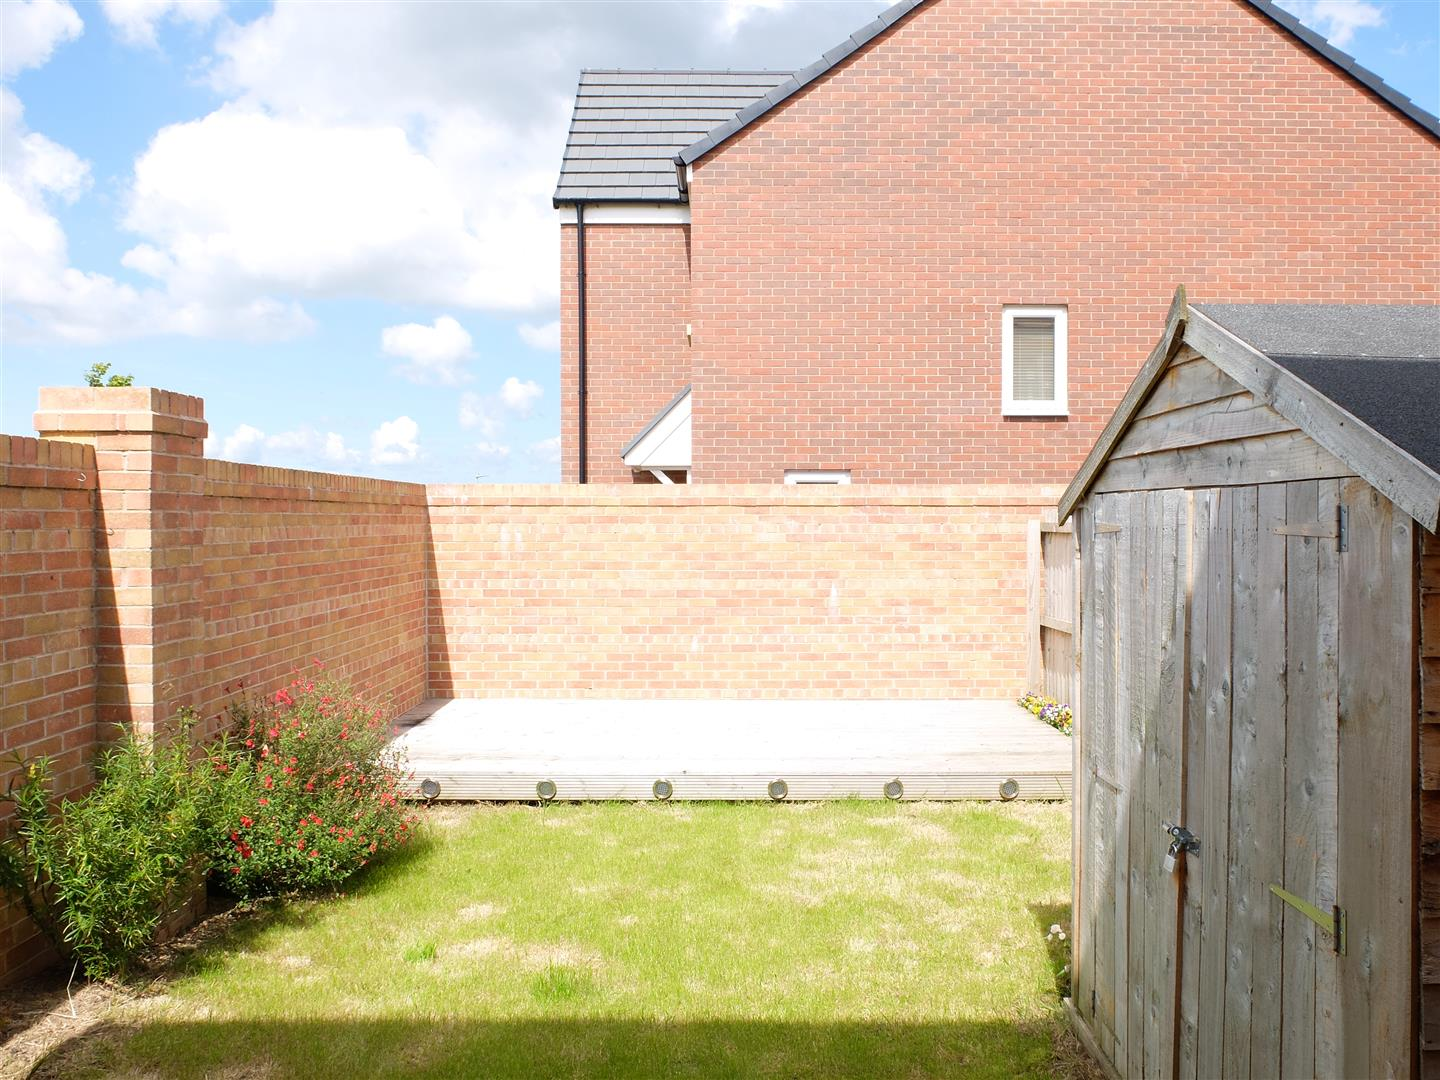 3 Bedrooms House - Semi-Detached For Sale 26 Arnison Close Carlisle